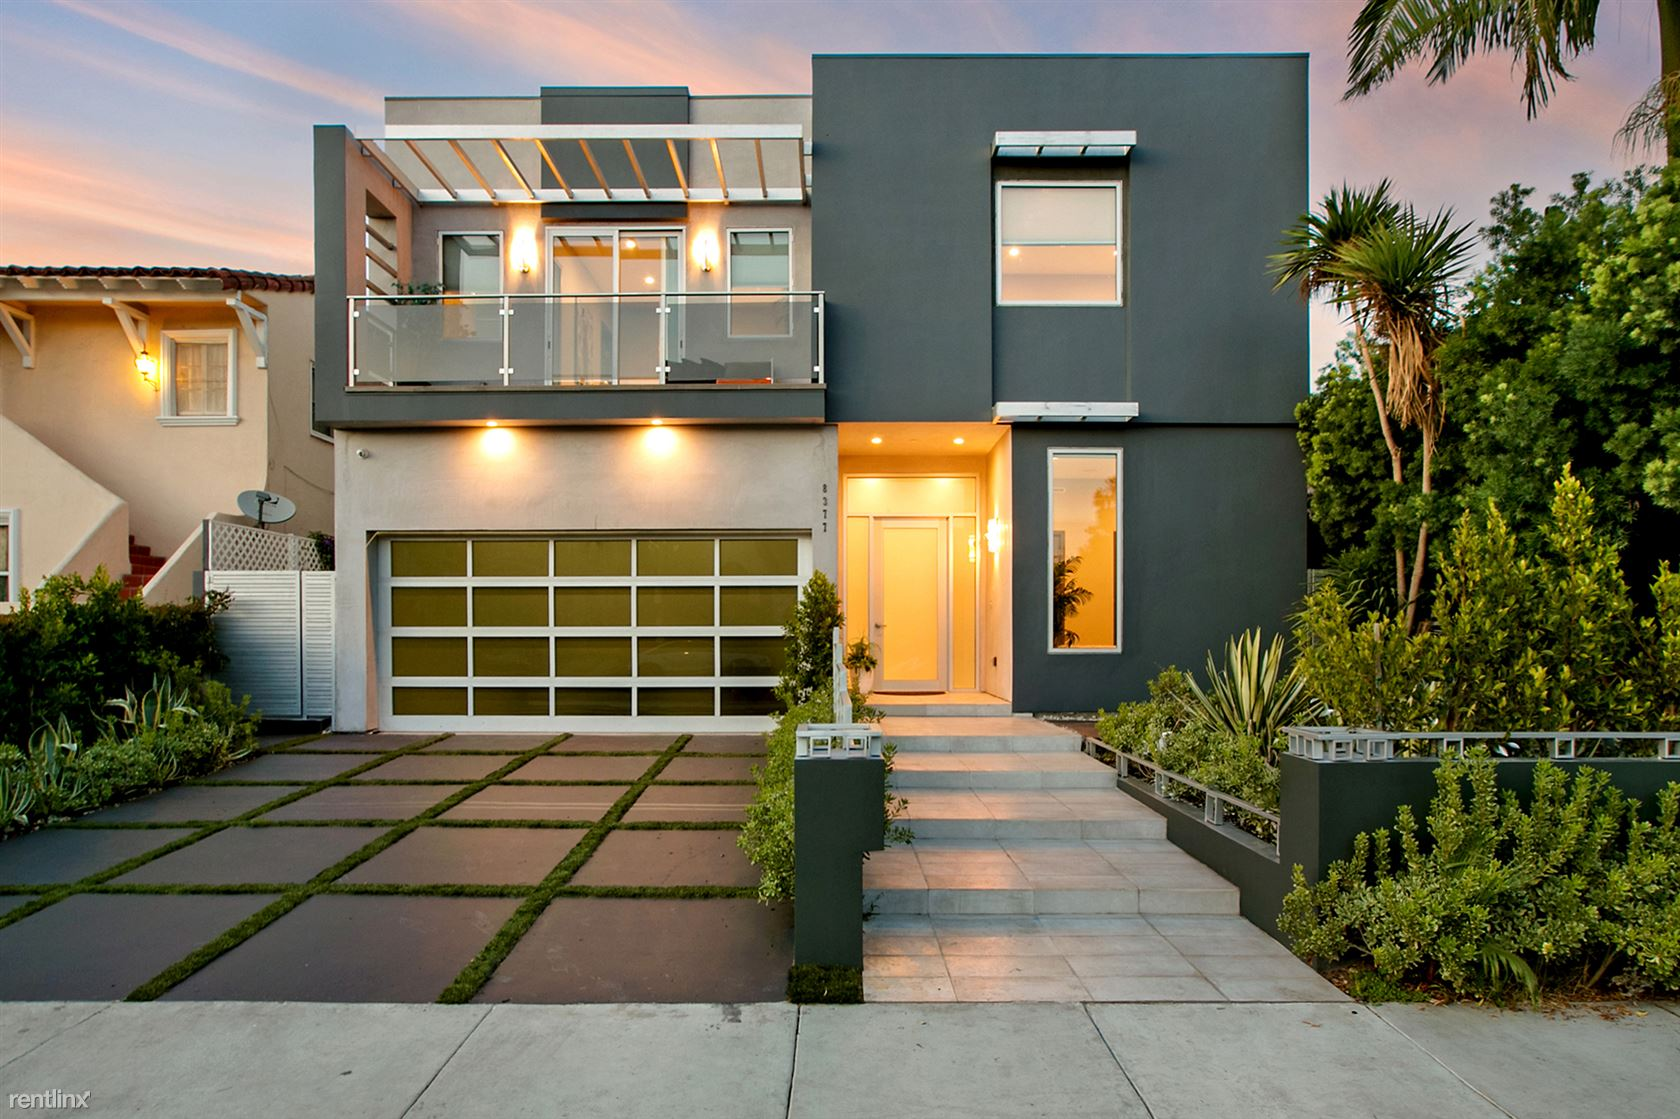 8377 W 4th St - 17500USD / month